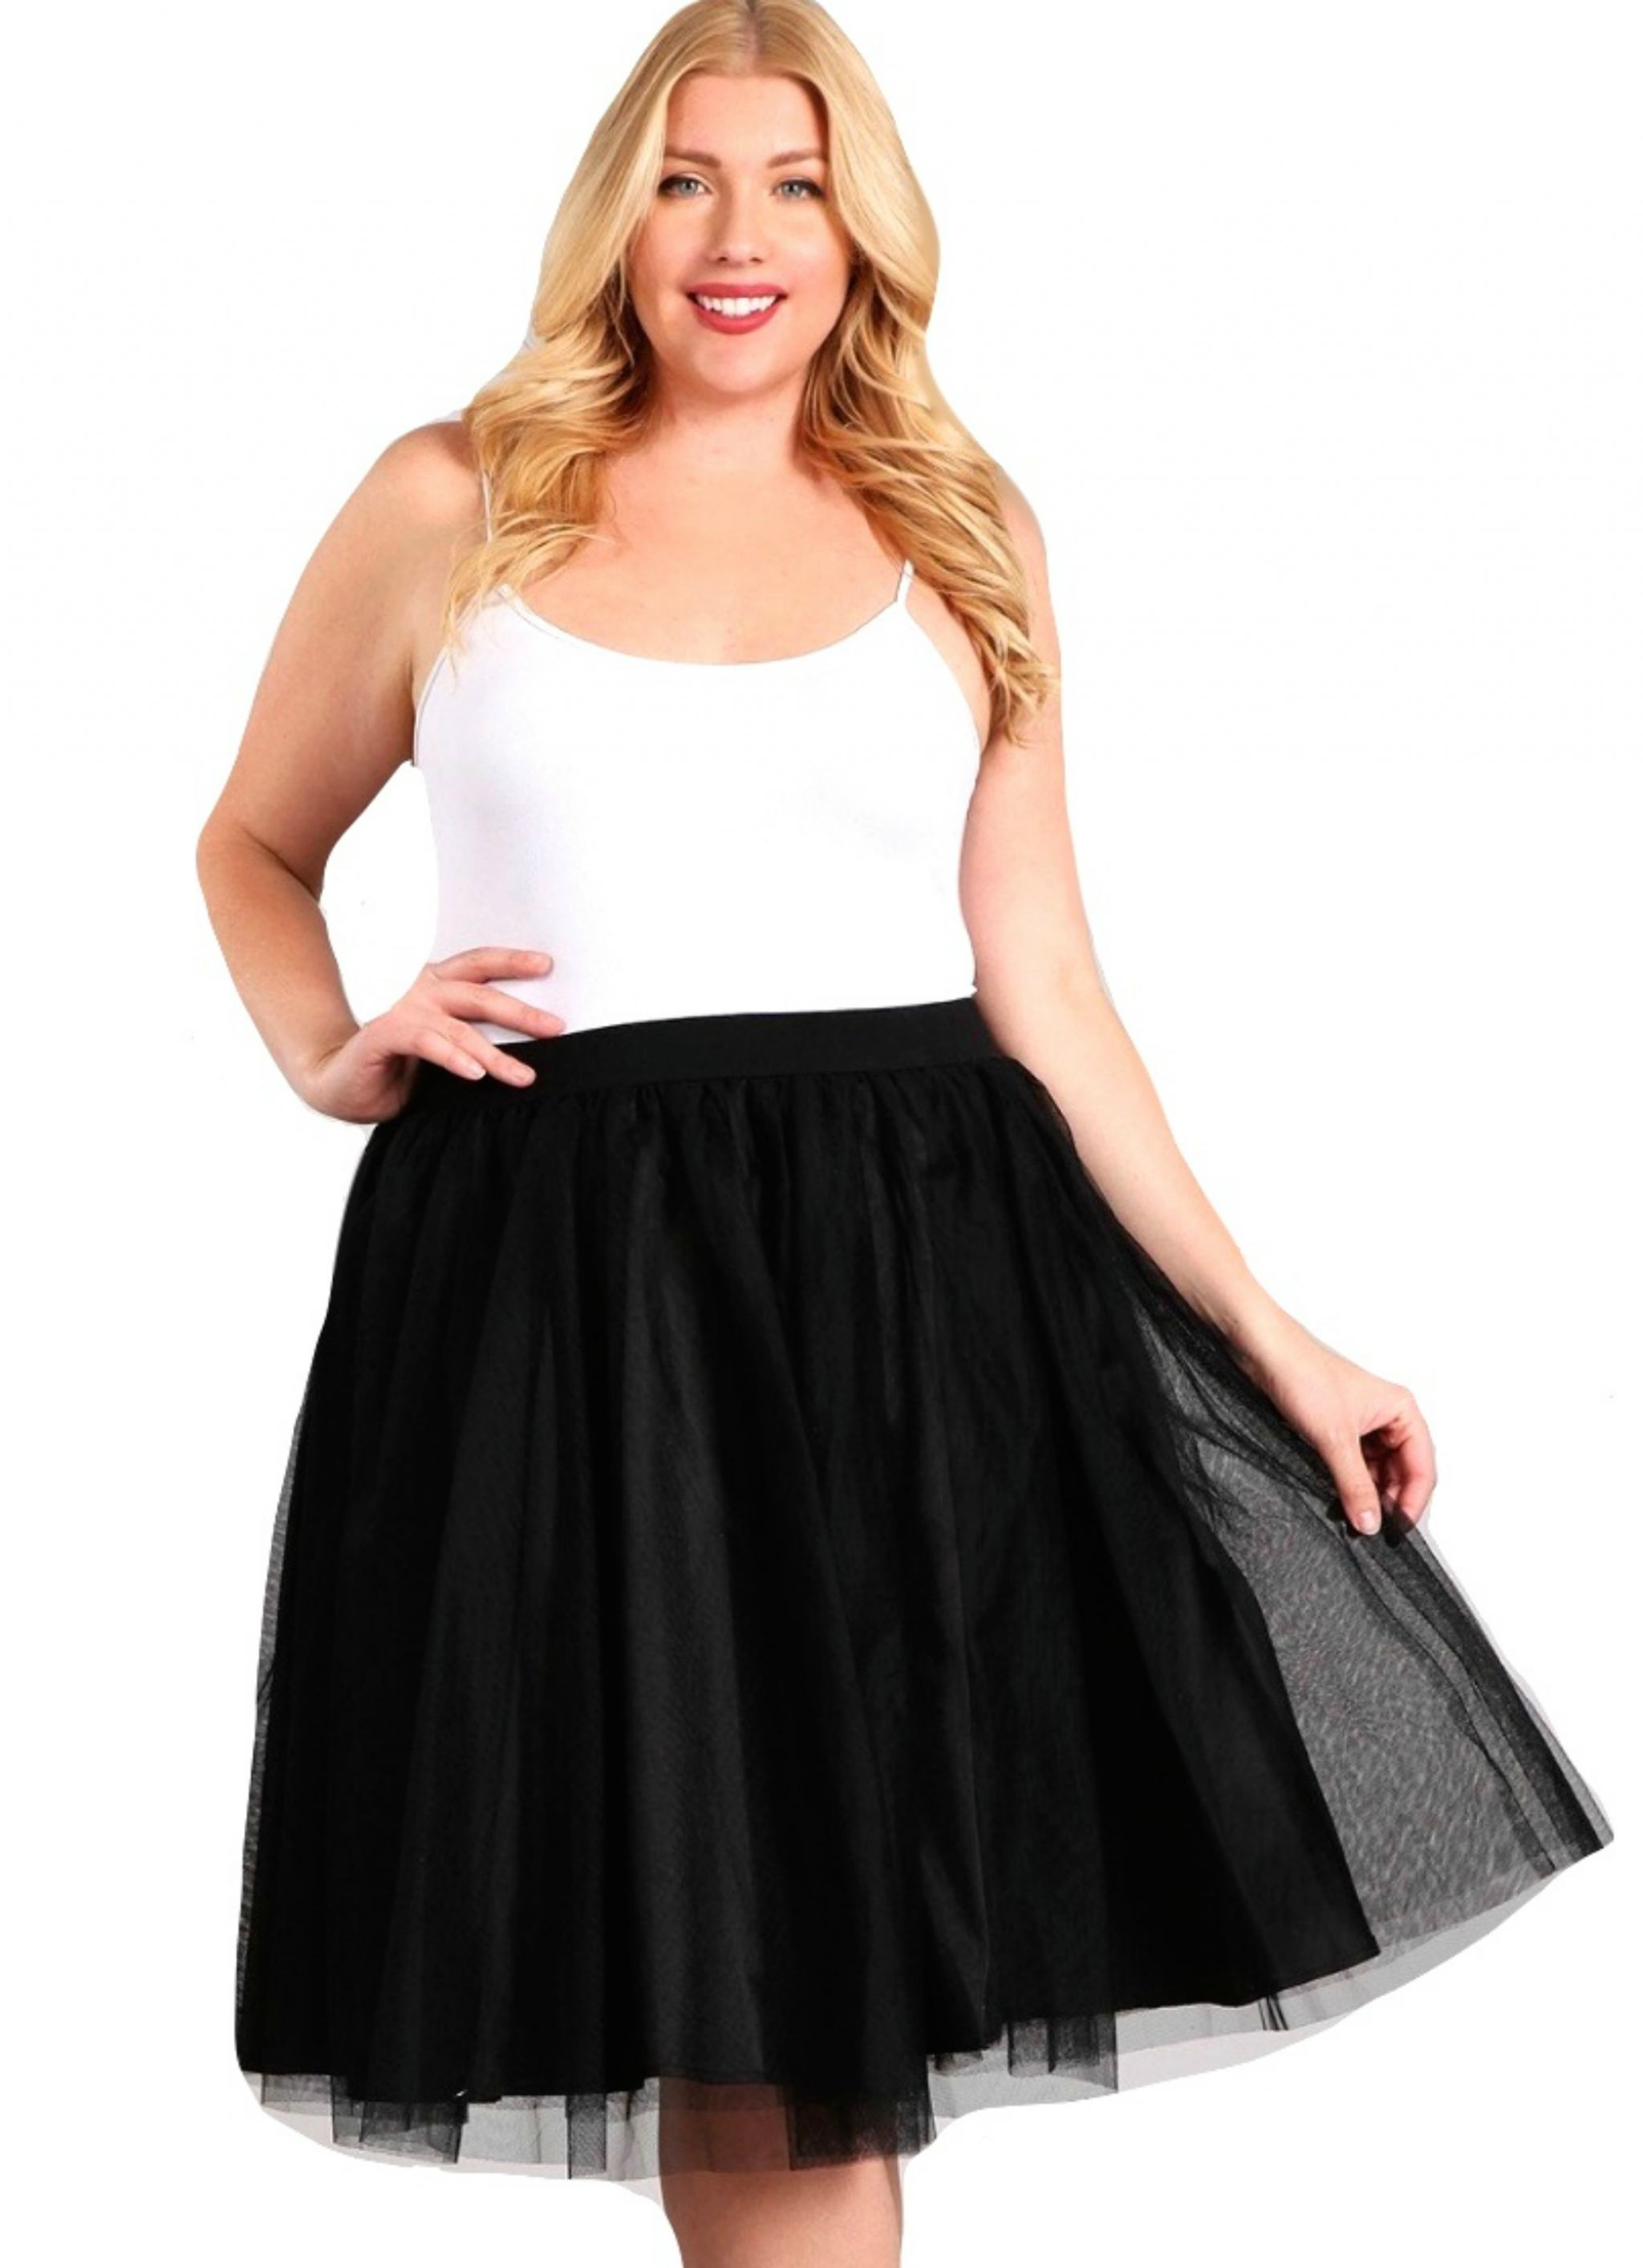 Shop Sweet Dirt women's plus size clothing